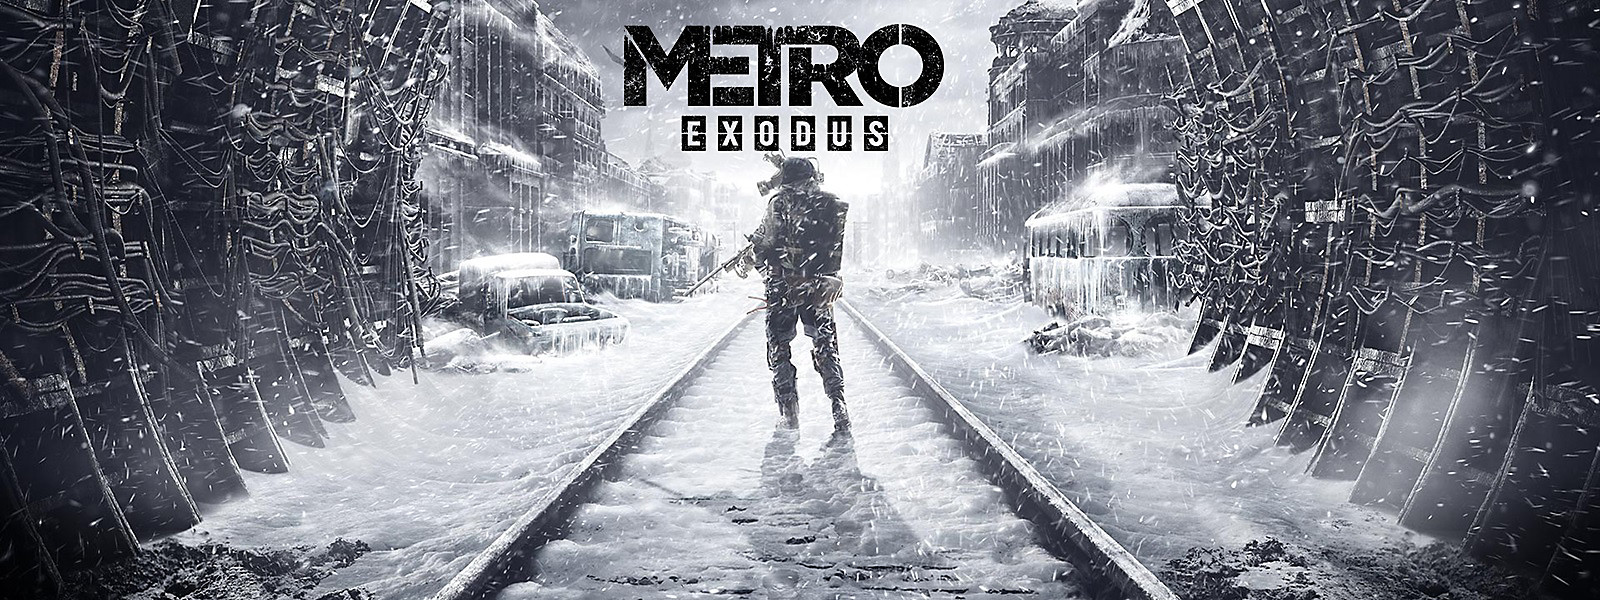 Metro Exodus Logo - Metro Exodus Game | PS4 - PlayStation